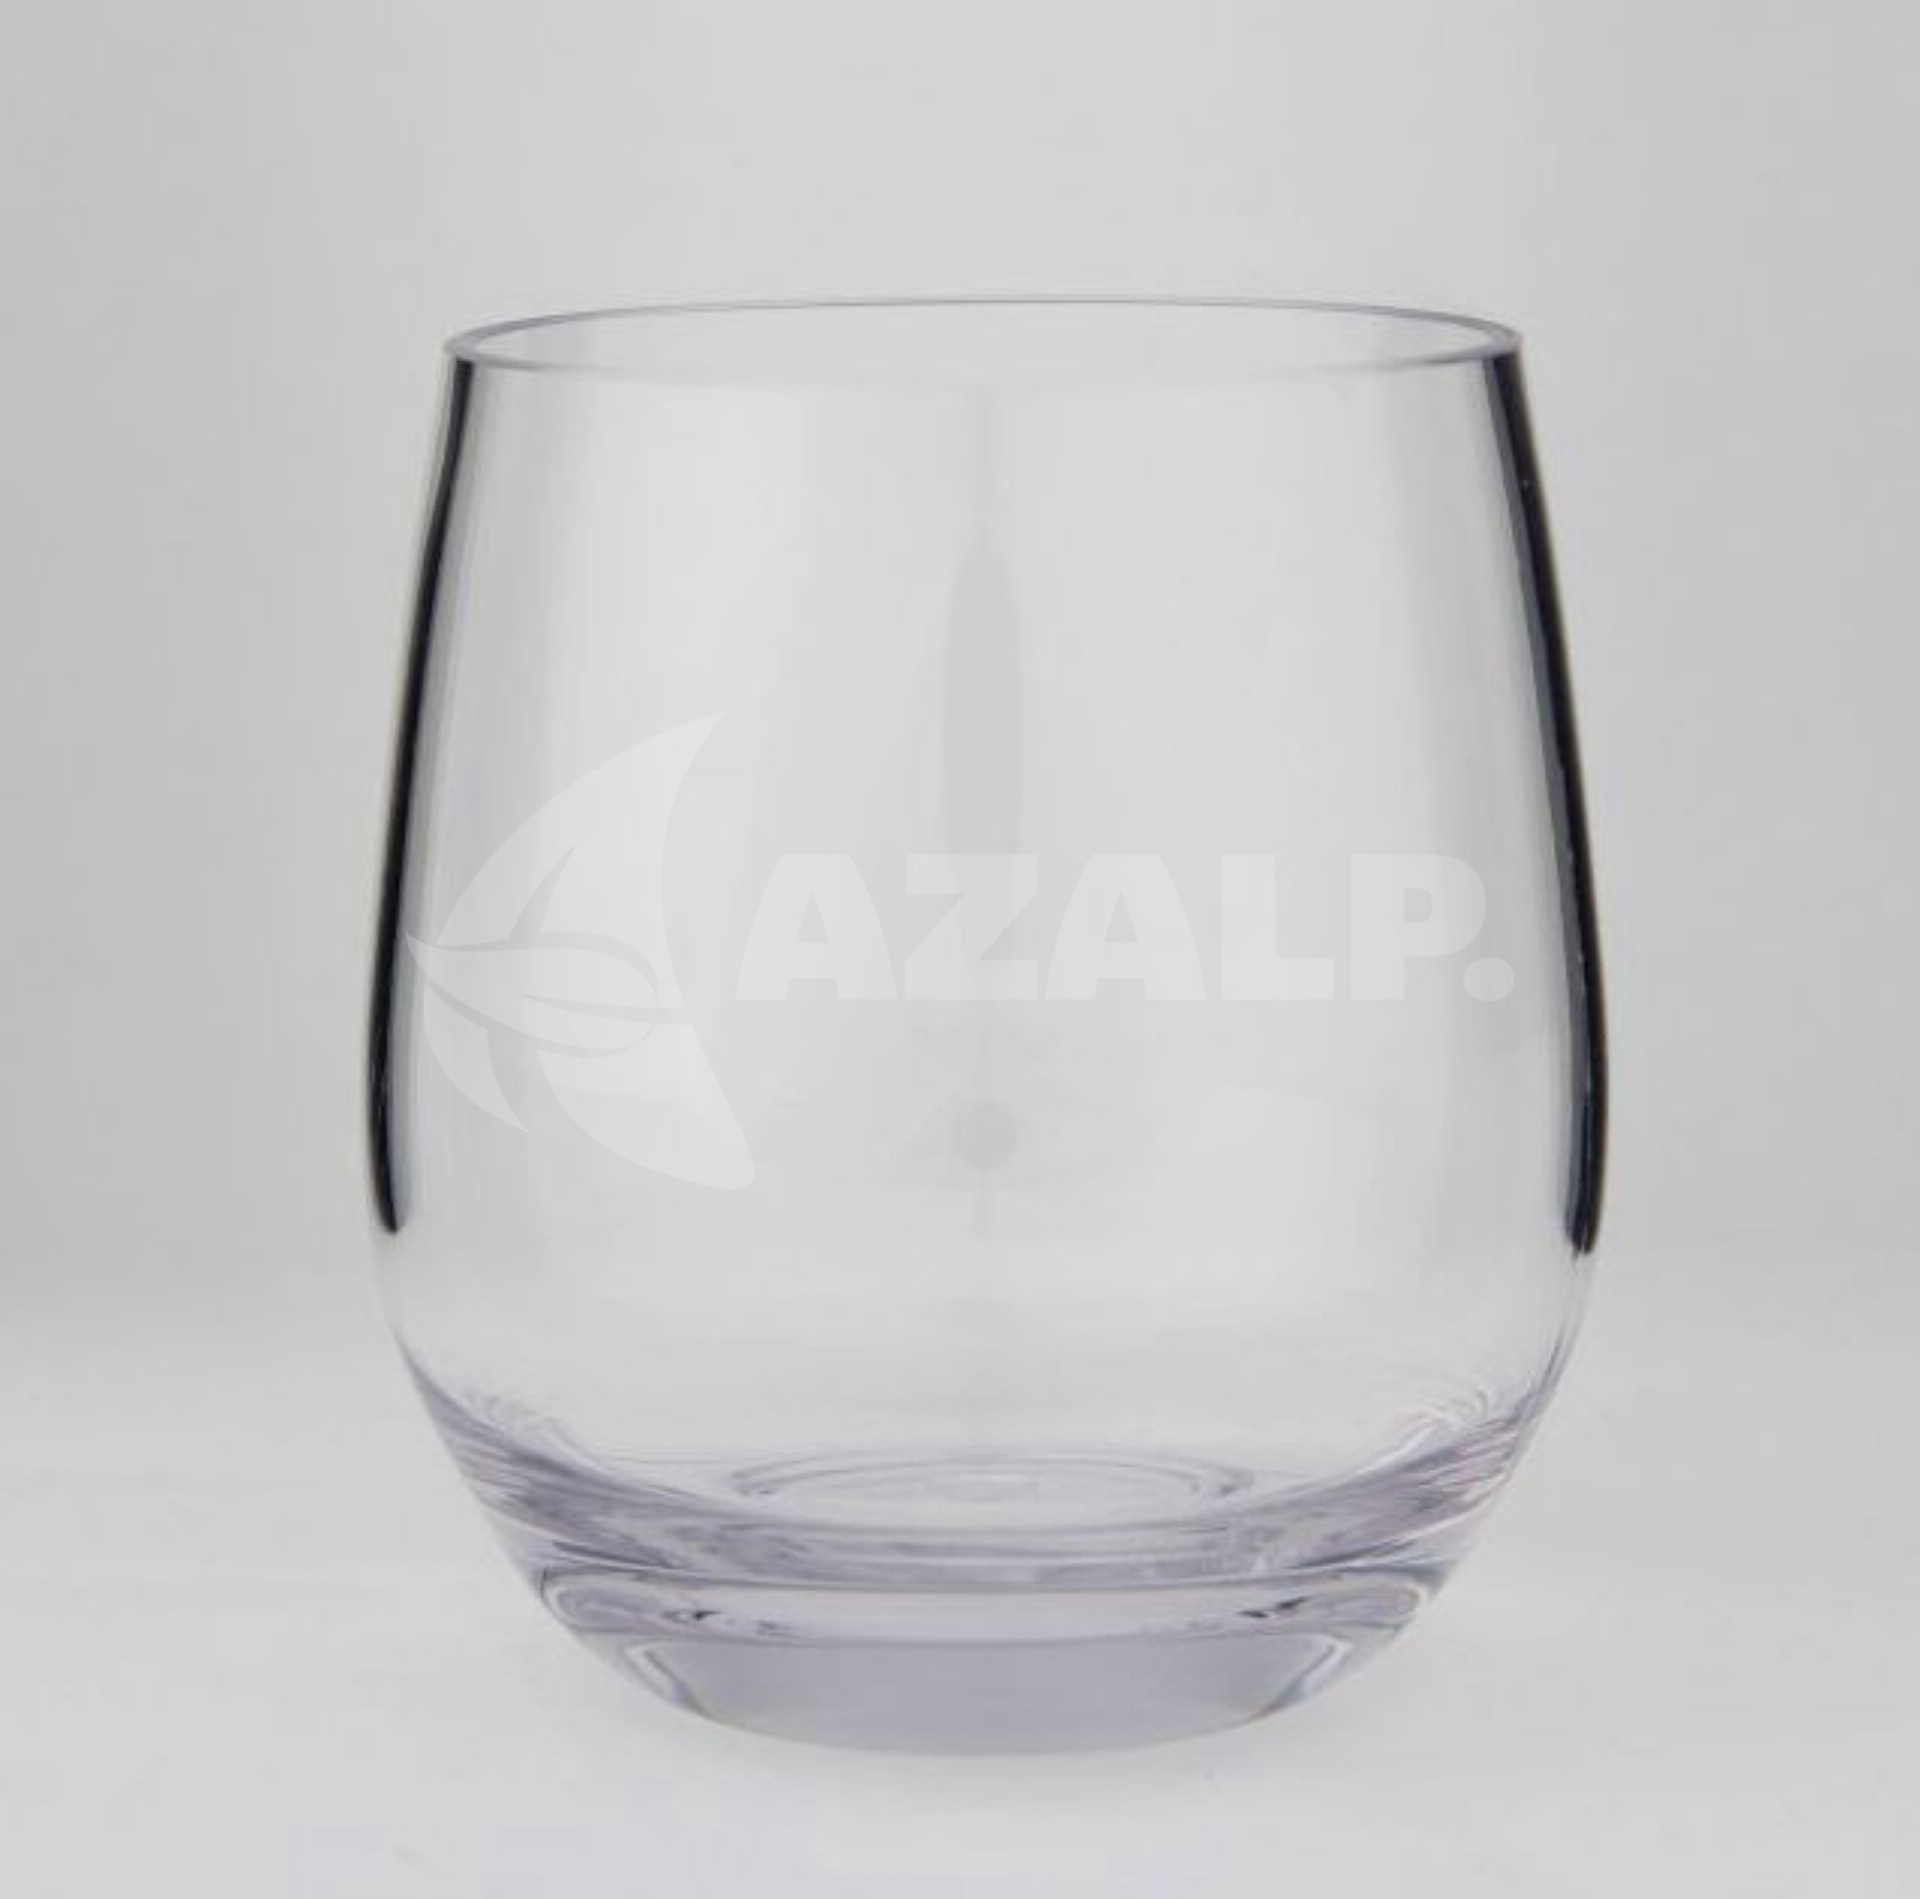 Biergläser Kaufen Happyglass Gg600 Water Wine Glass Deluxe 40 Cl 2 Gläser